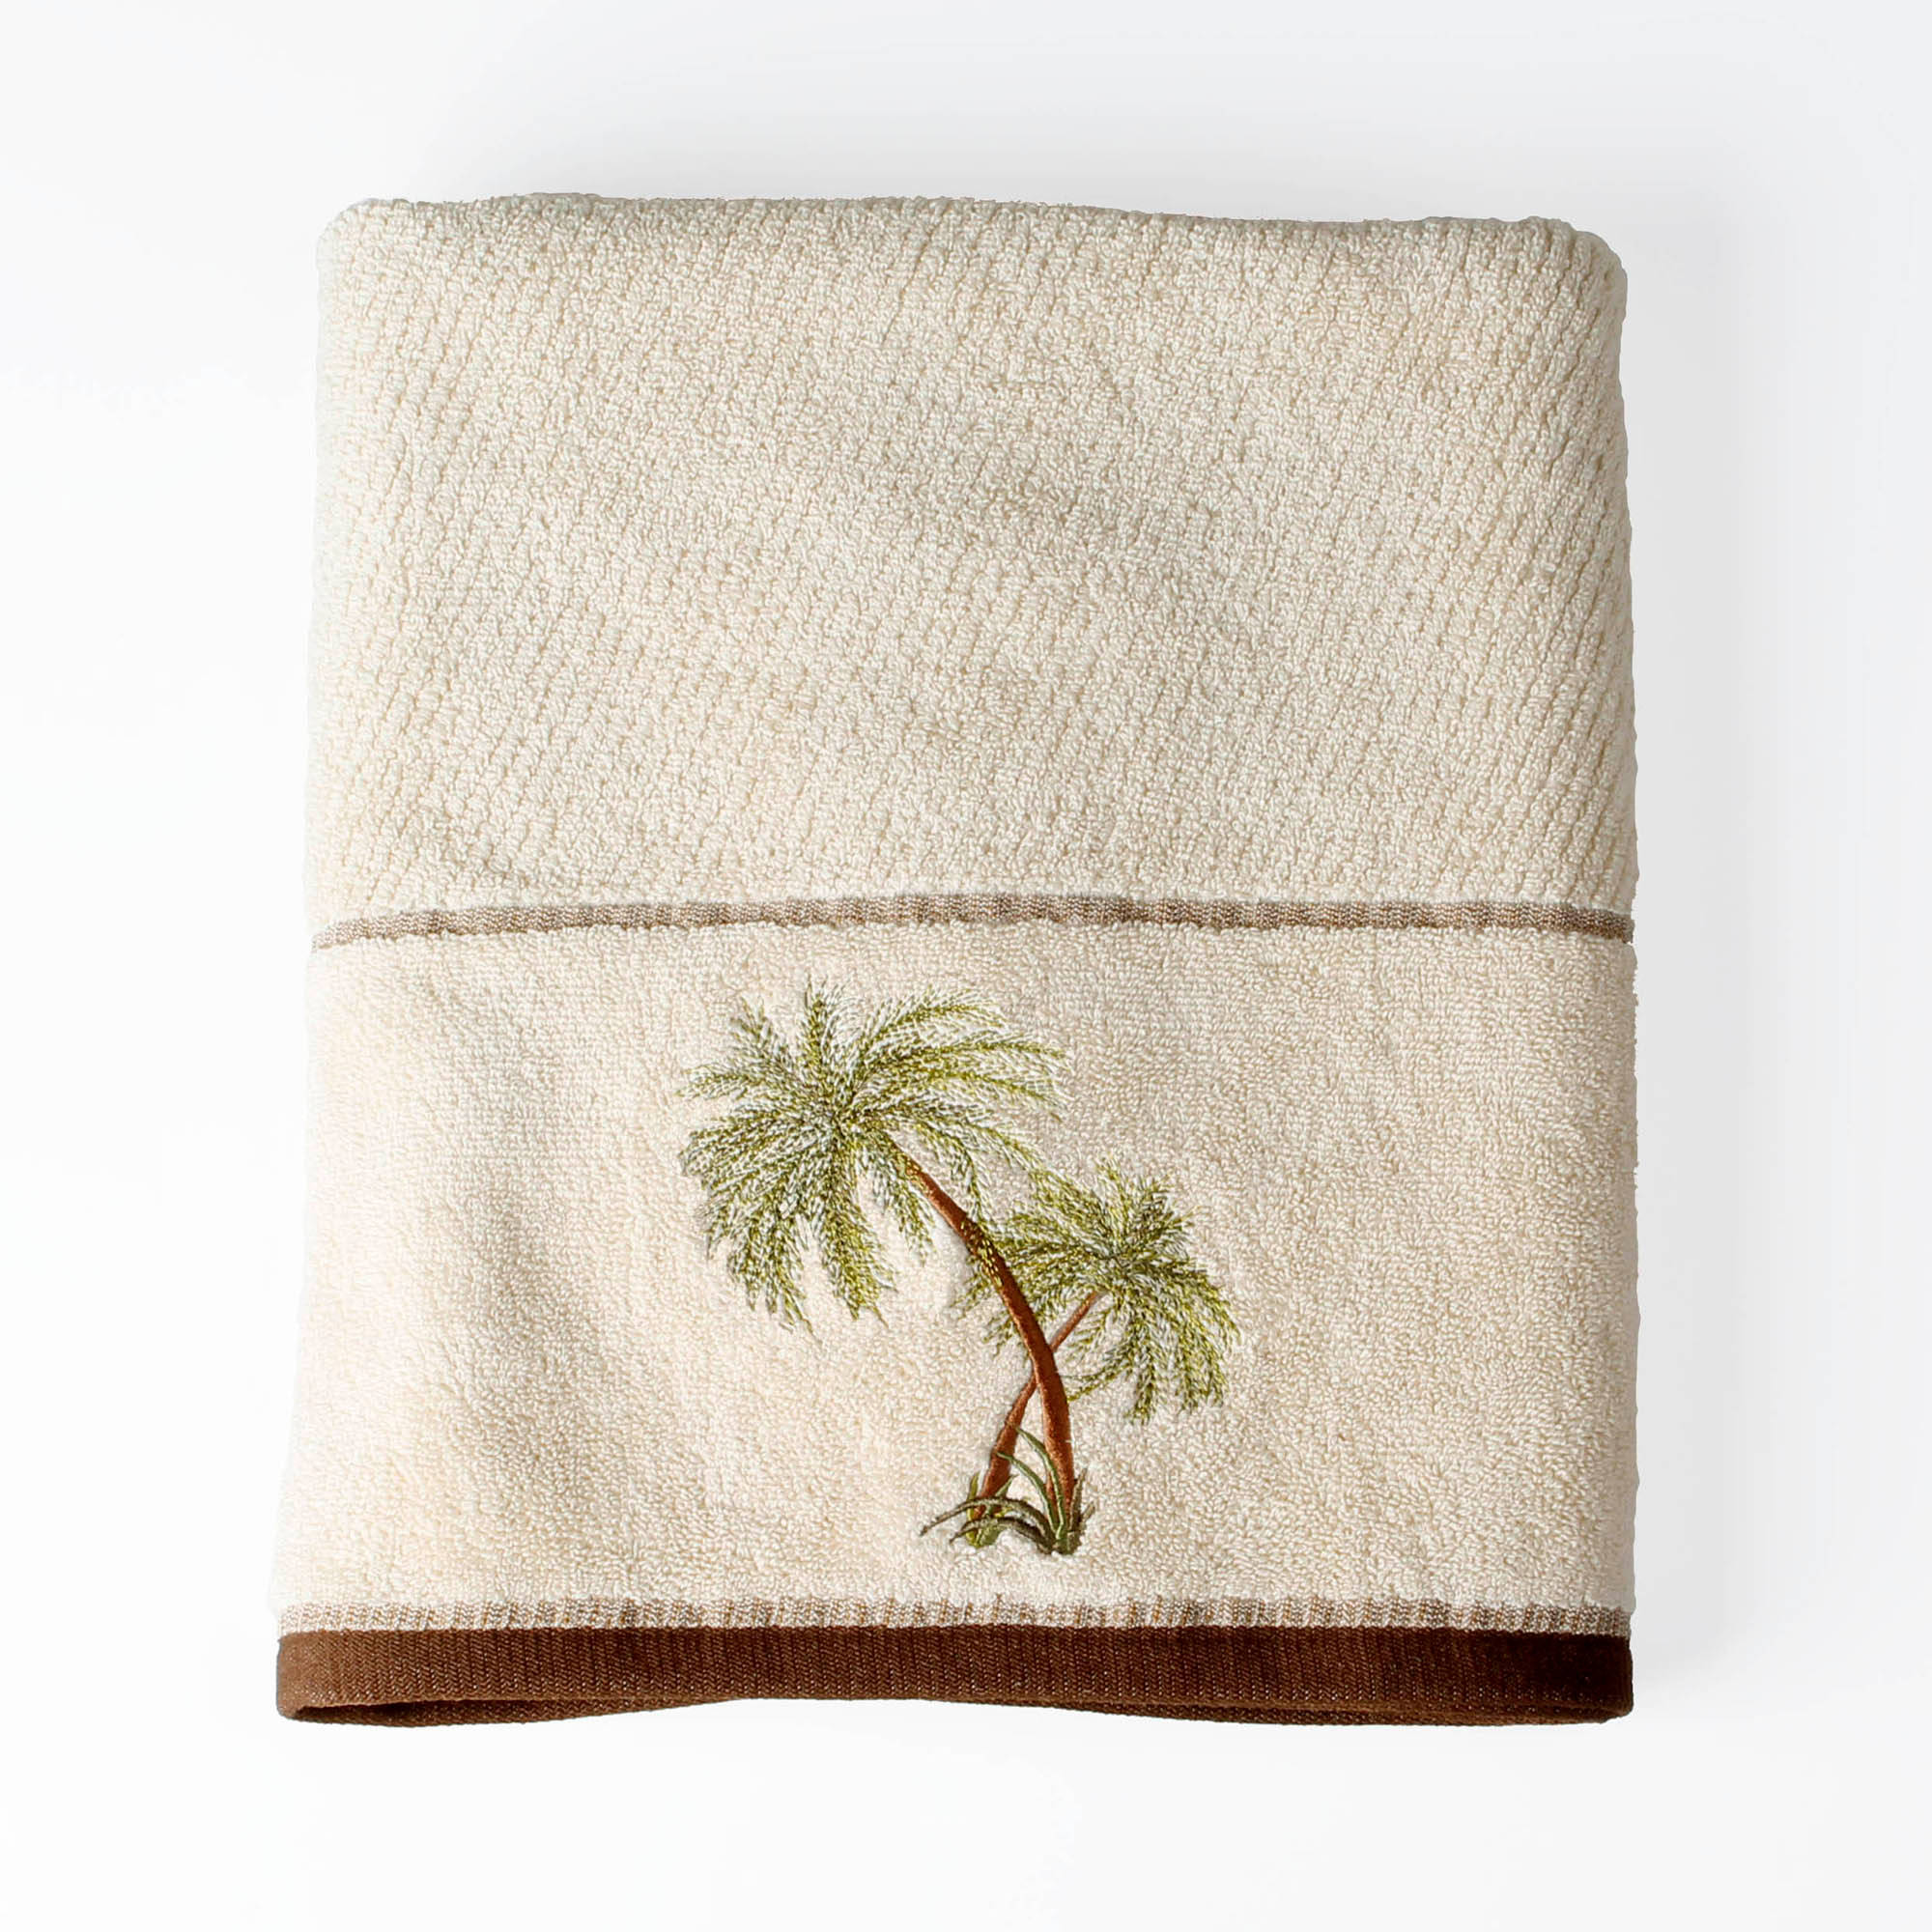 Better Homes and Gardens Palm Cove Bath Towel Collection by Saturday Knight LTD